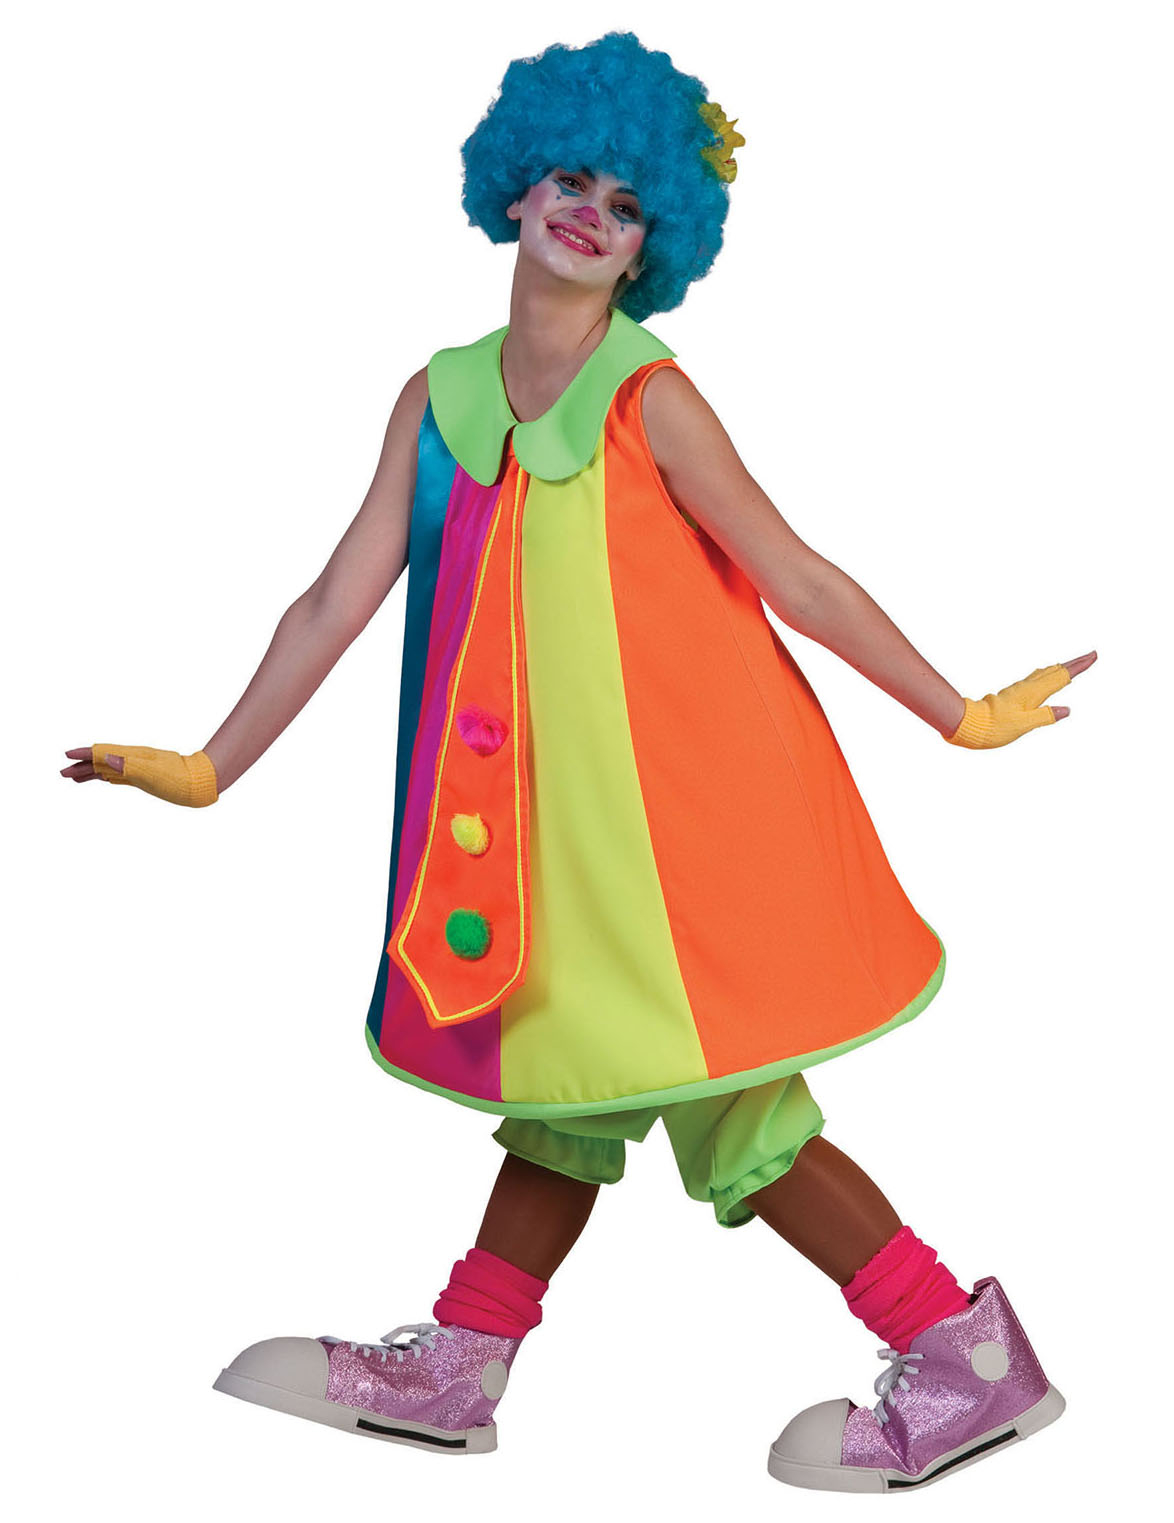 f1097eb126a3 Costume da clown donna fosforescente  Costumi adulti